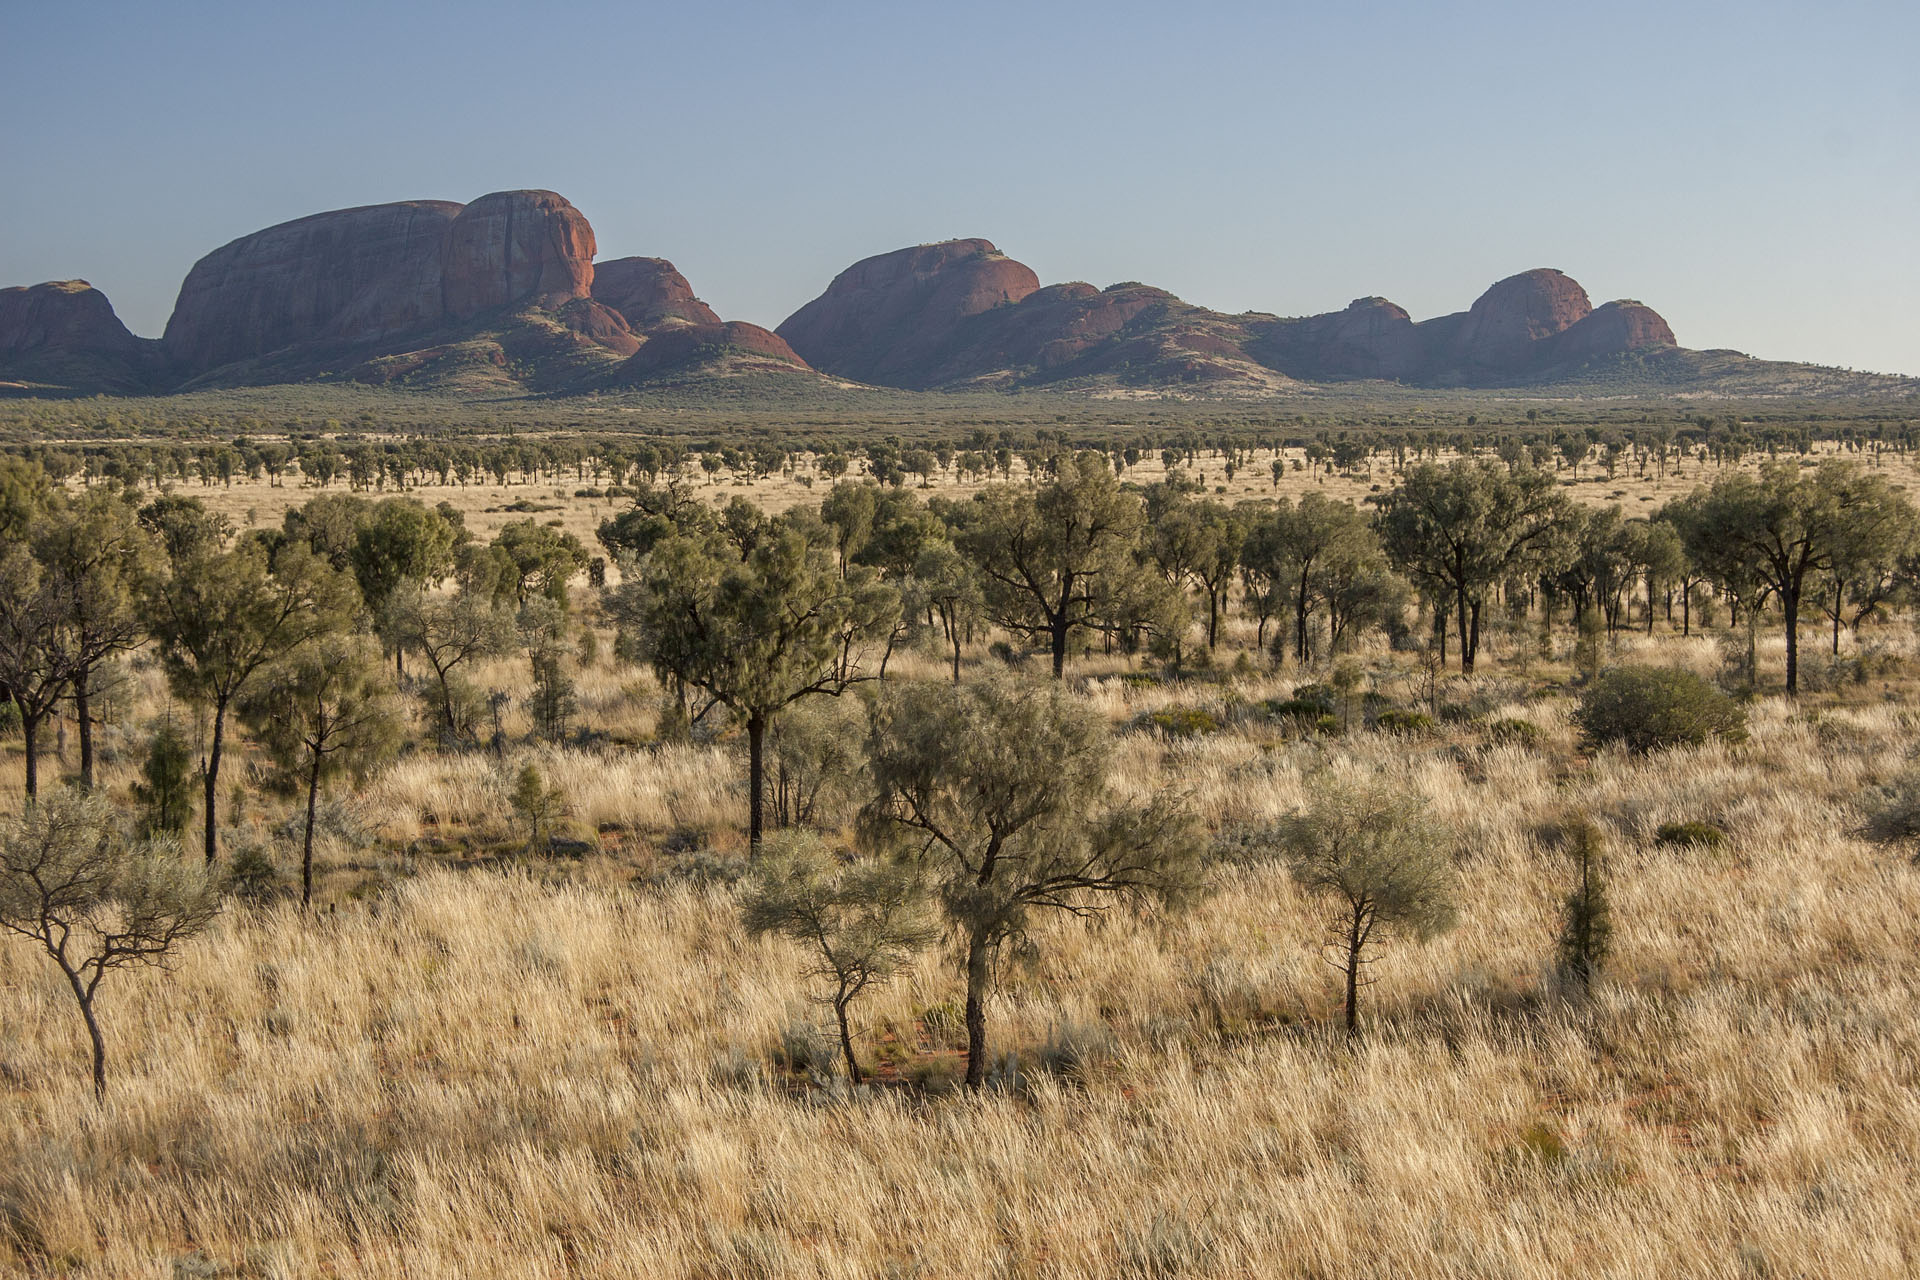 Kata Tjuta is getting closer.